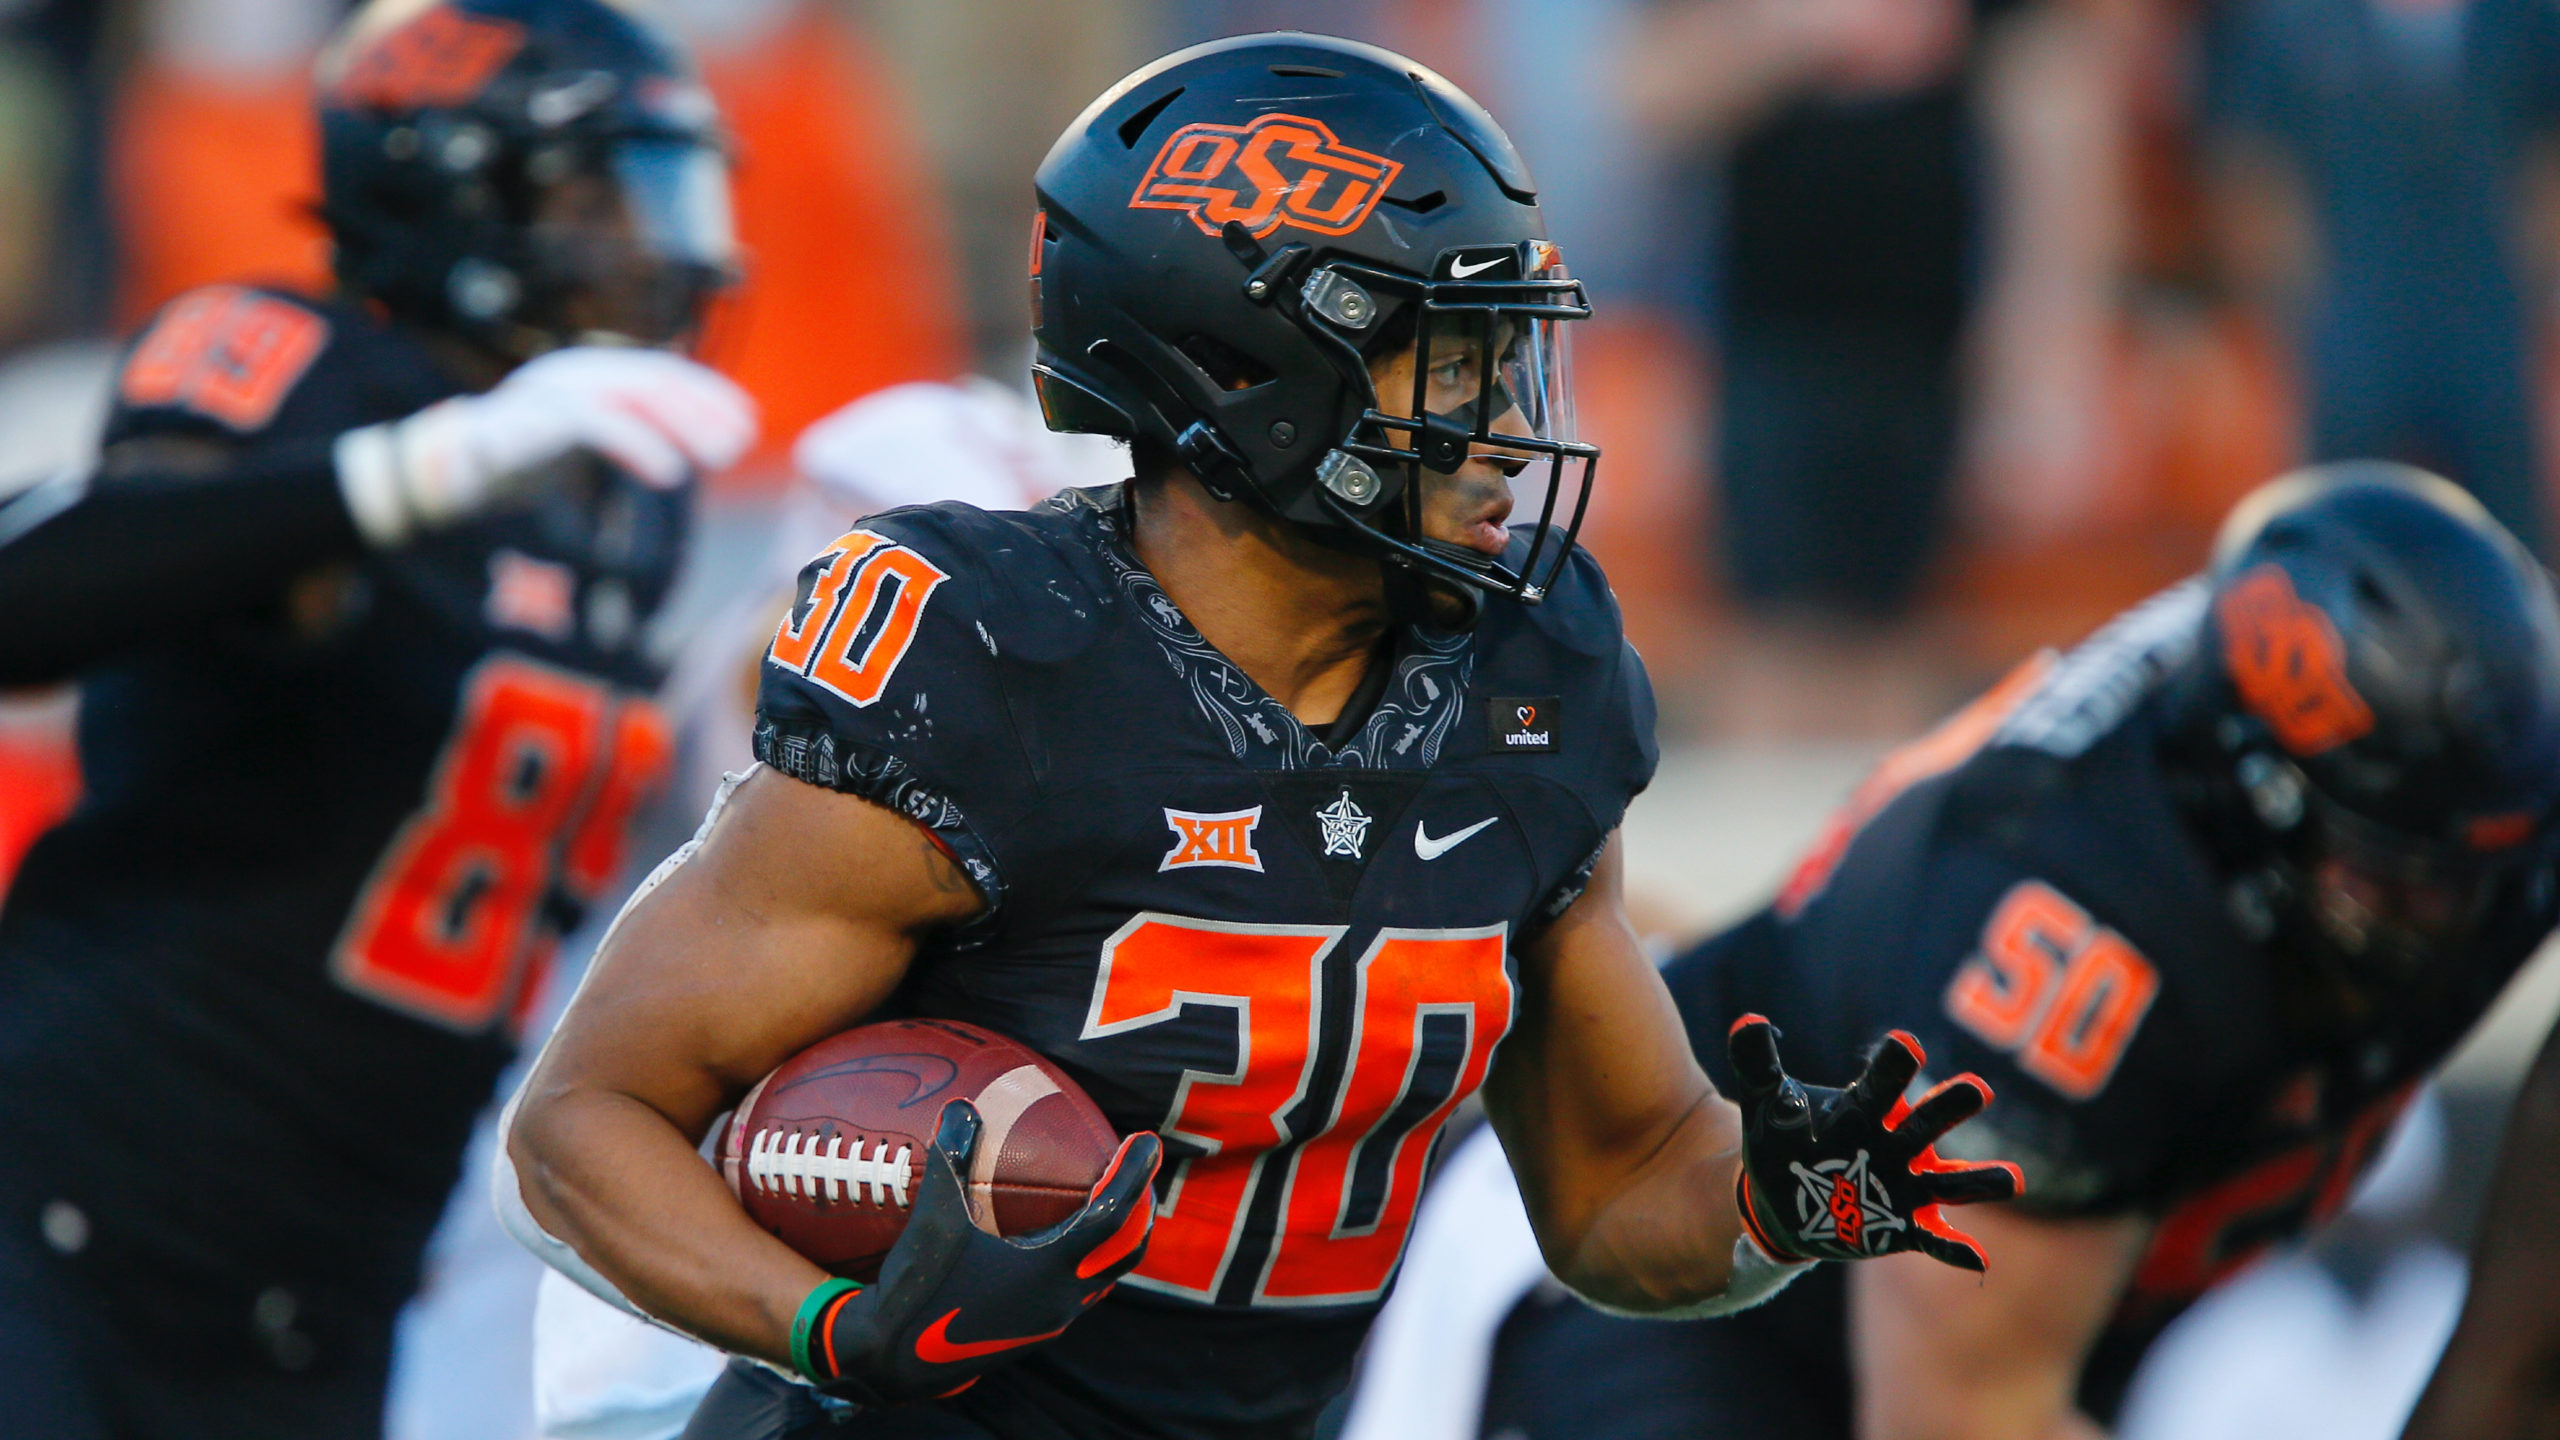 College Football Odds & Picks for Oklahoma State vs. Oklahoma: Betting Value on Pokes article feature image